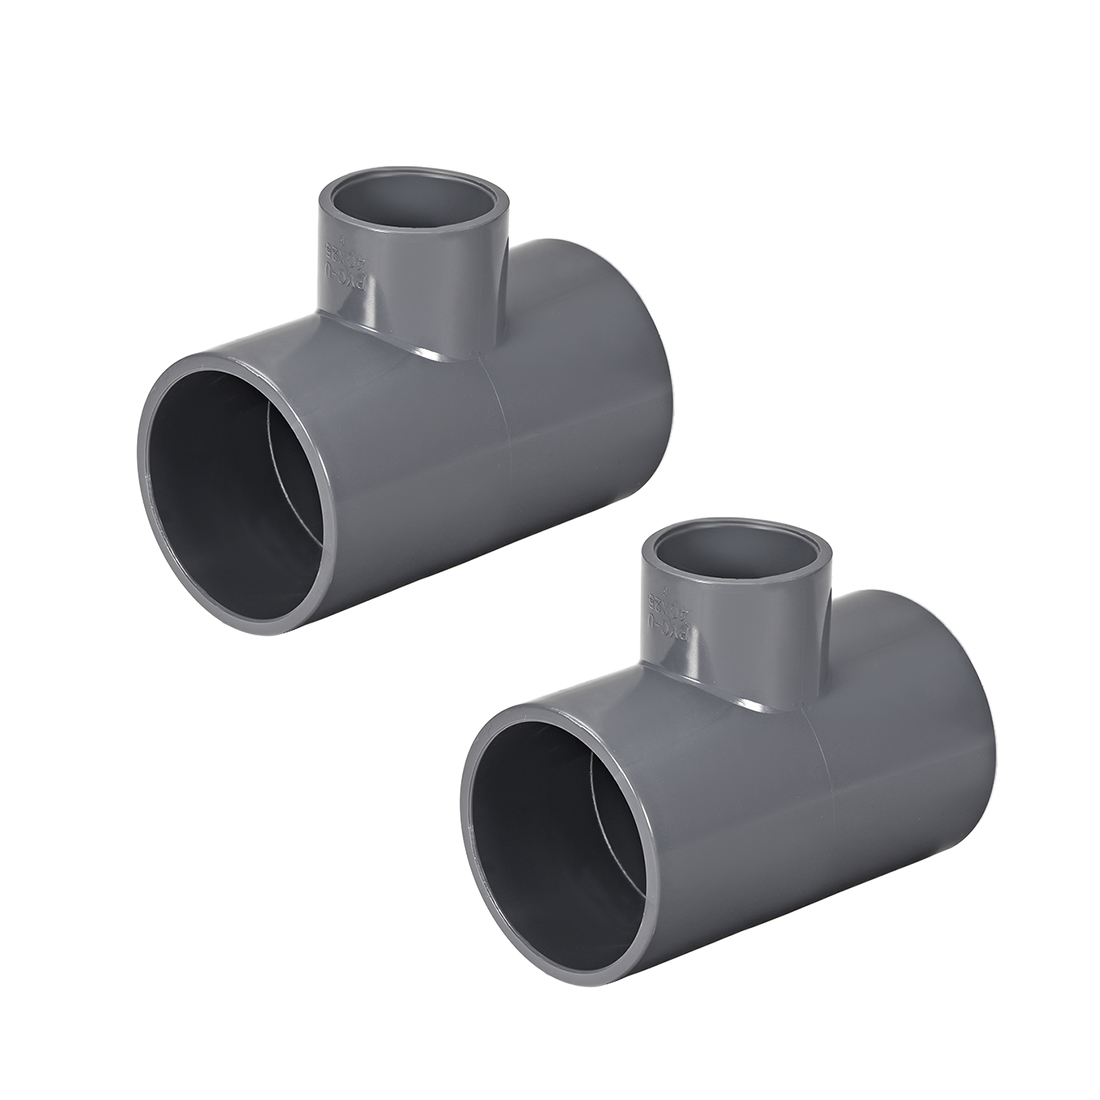 PVC Pipe Fitting Tee 401-Series Gray 1-inch X 1-1/2-inch Socket 2pcs